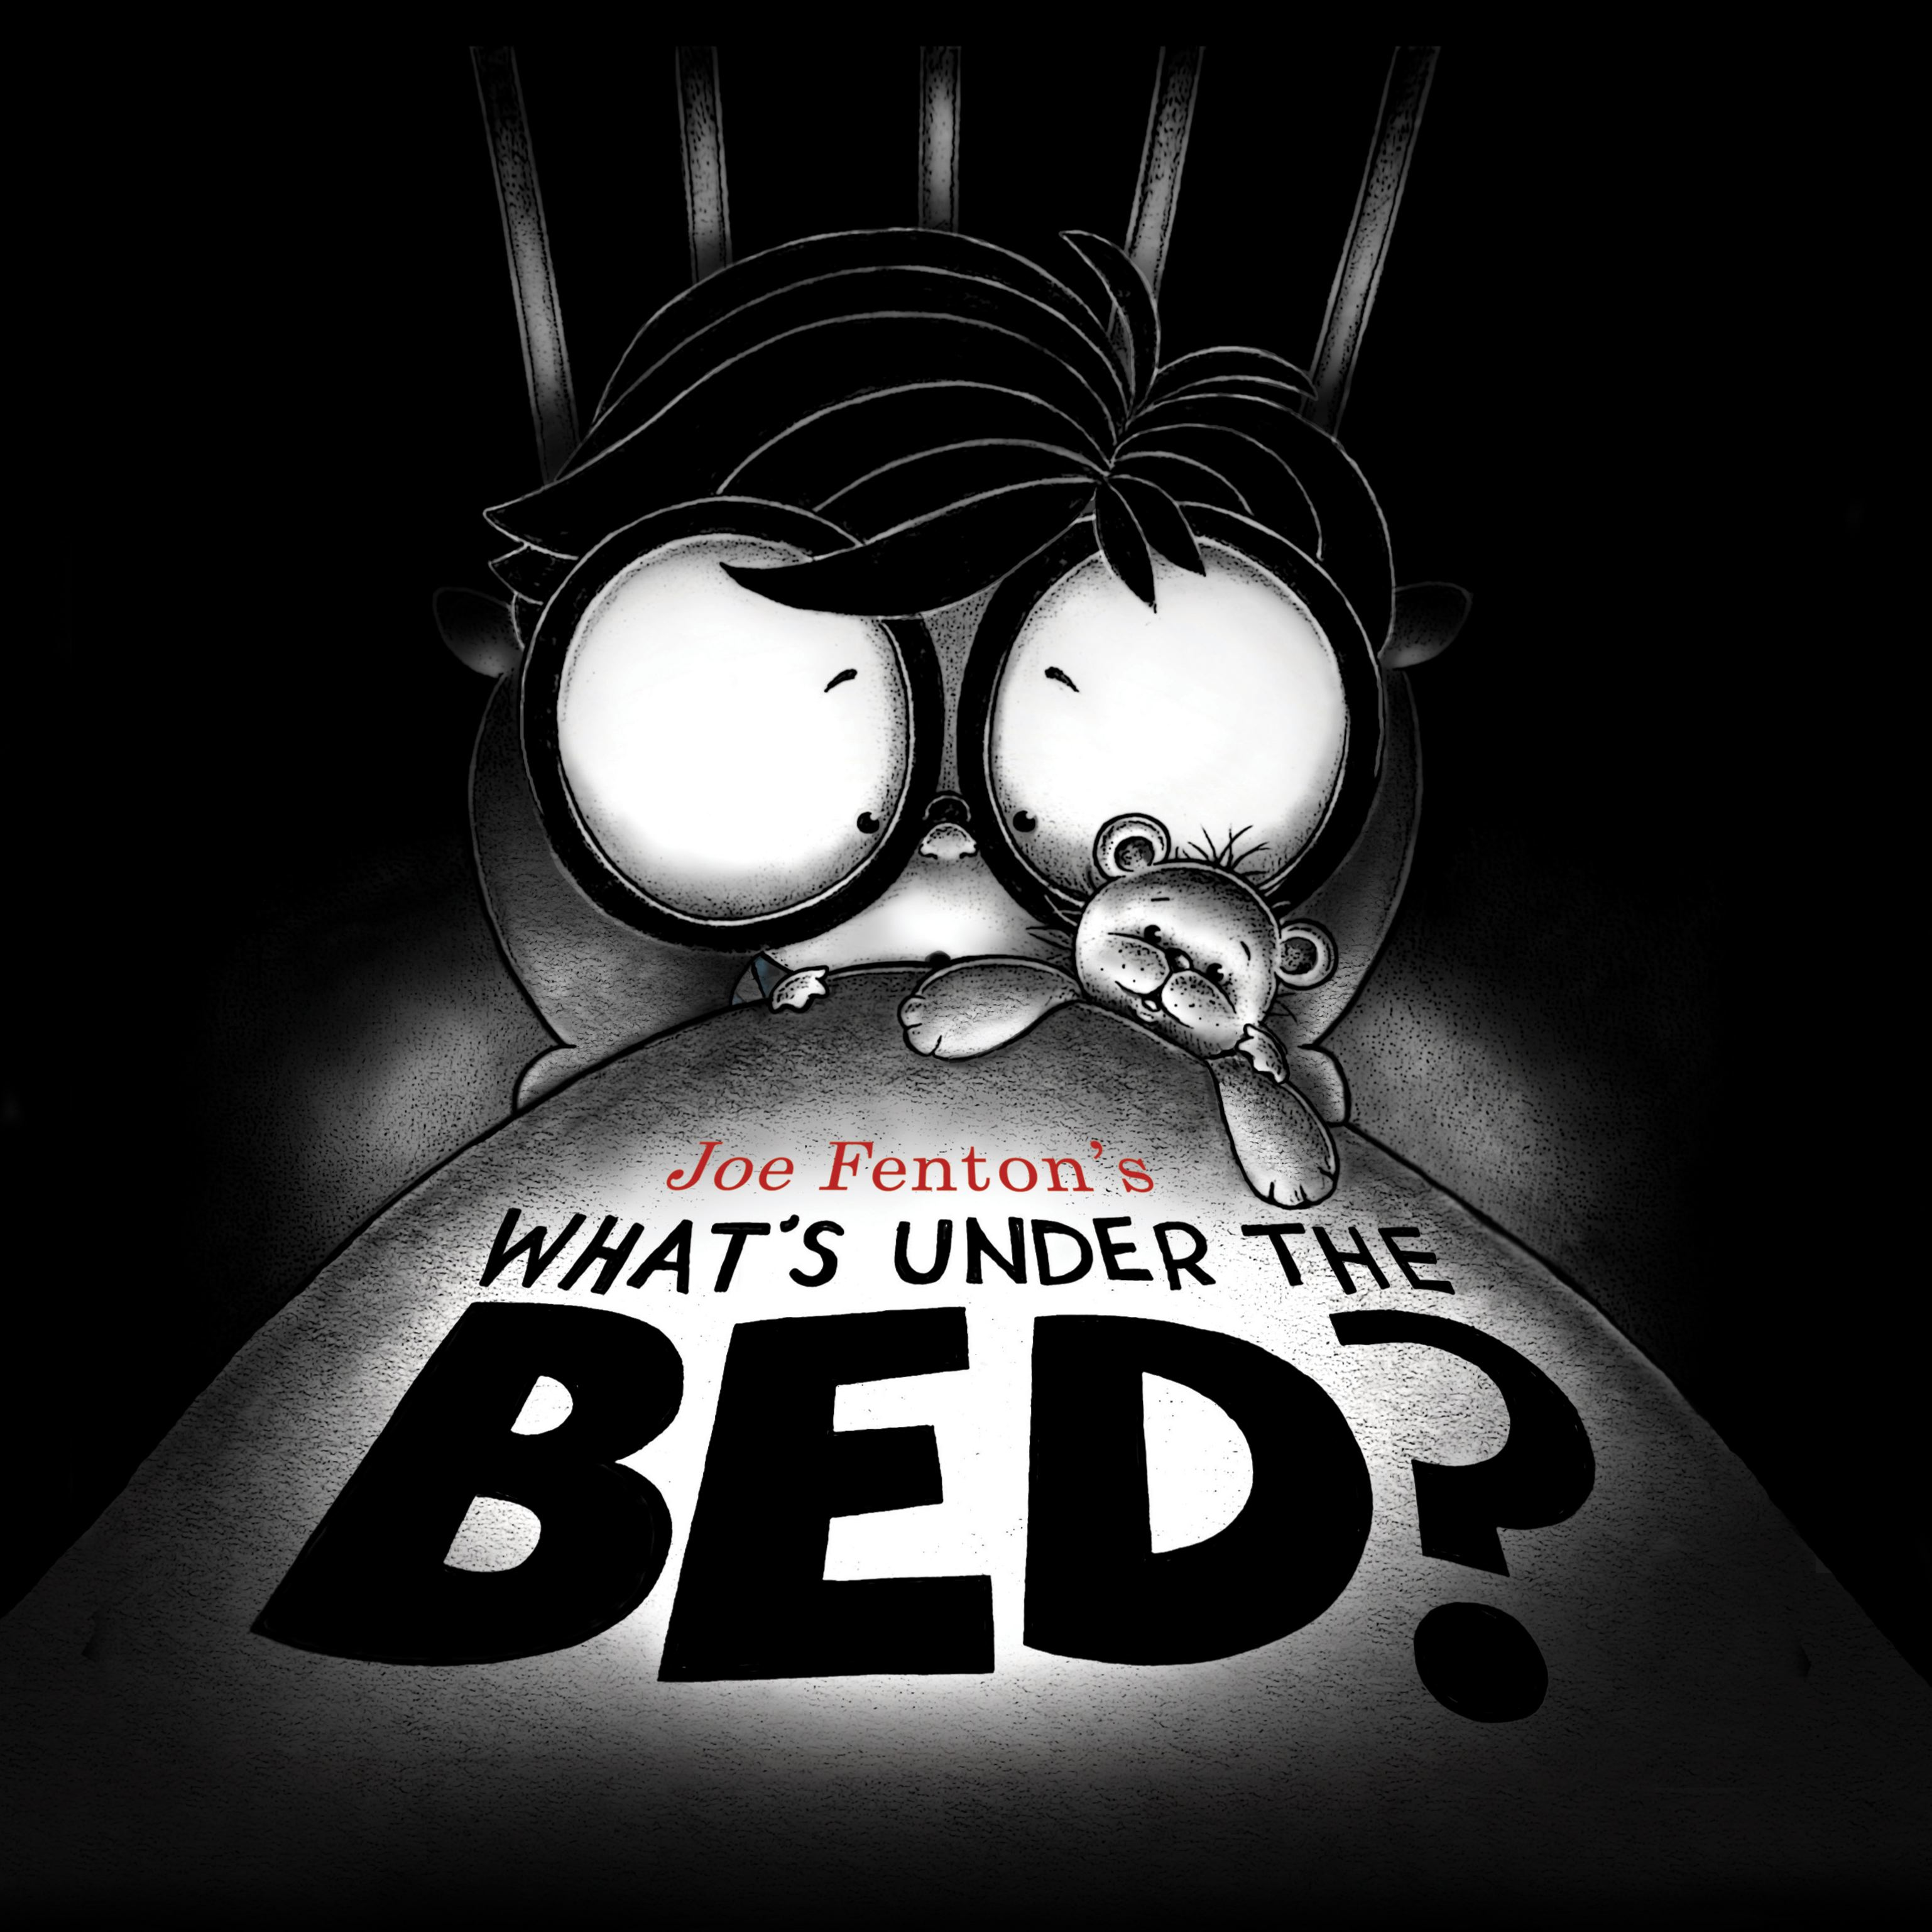 What's Under the Bed?